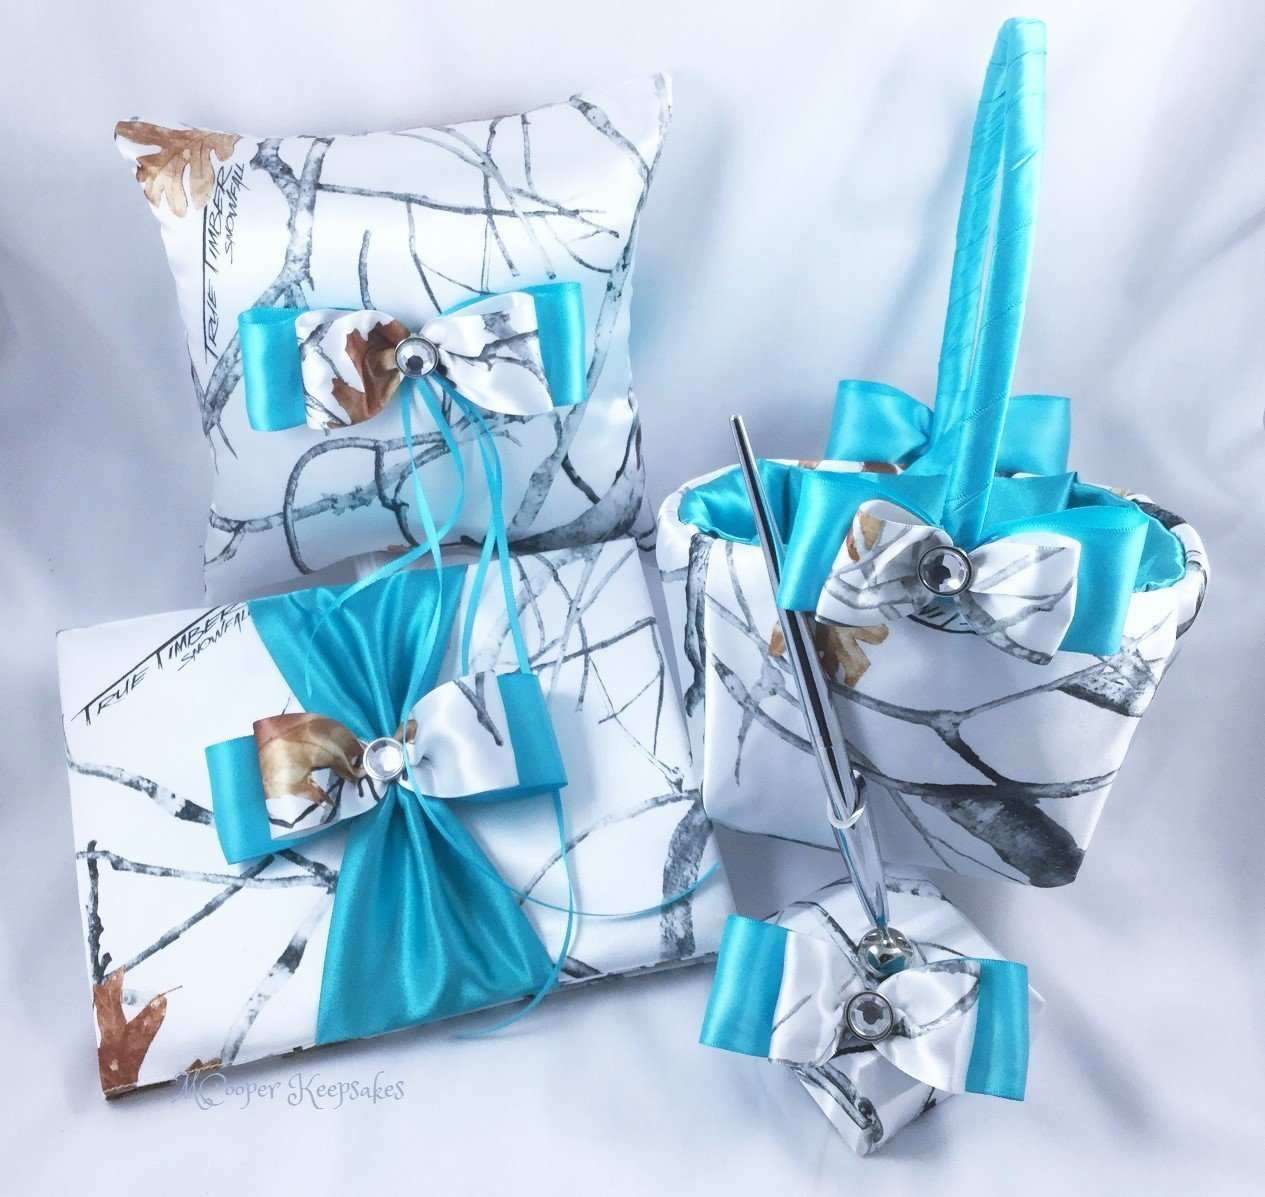 d0524cee2fa Amazon.com  True Timber Snowfall Satin Camo   Teal Wedding Set  Handmade